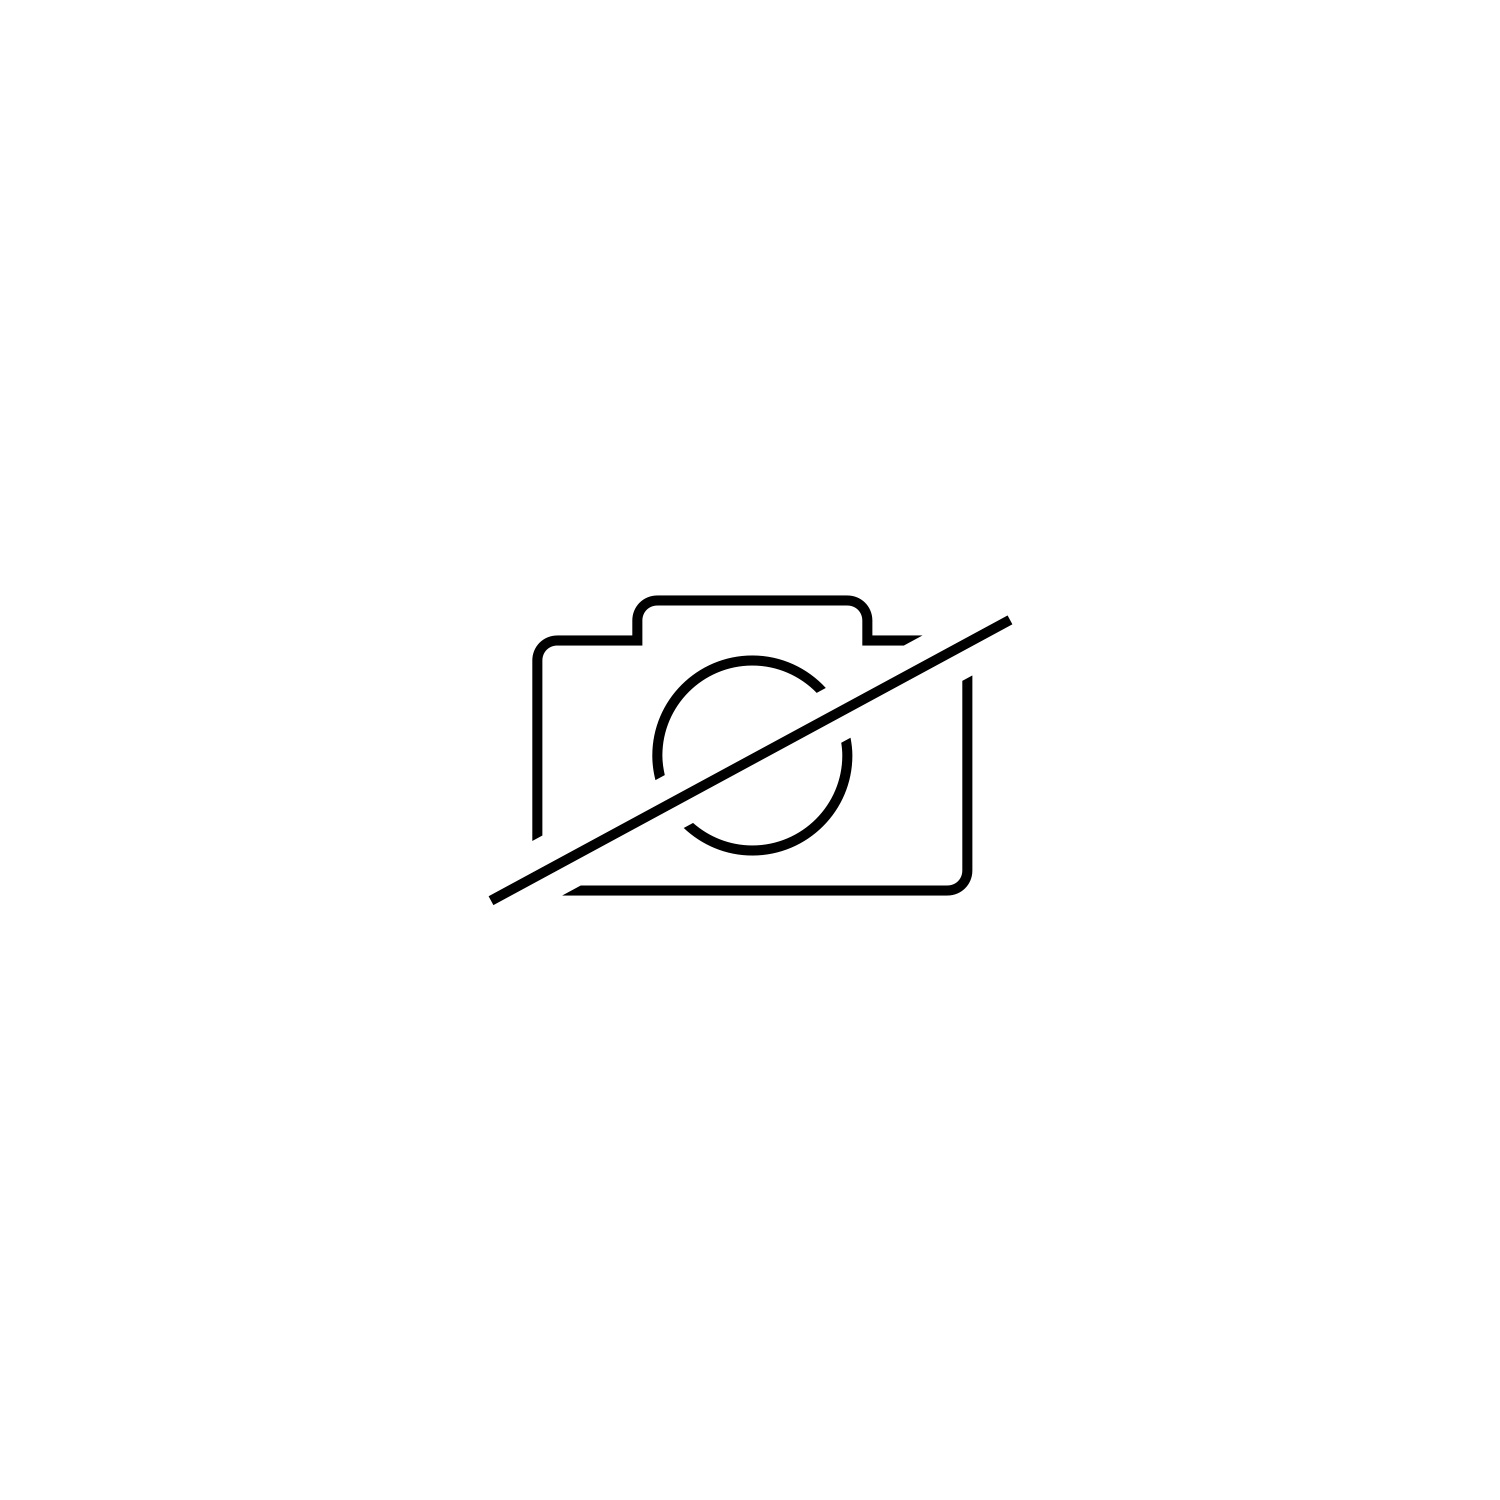 Audi Business cards holder leather, black